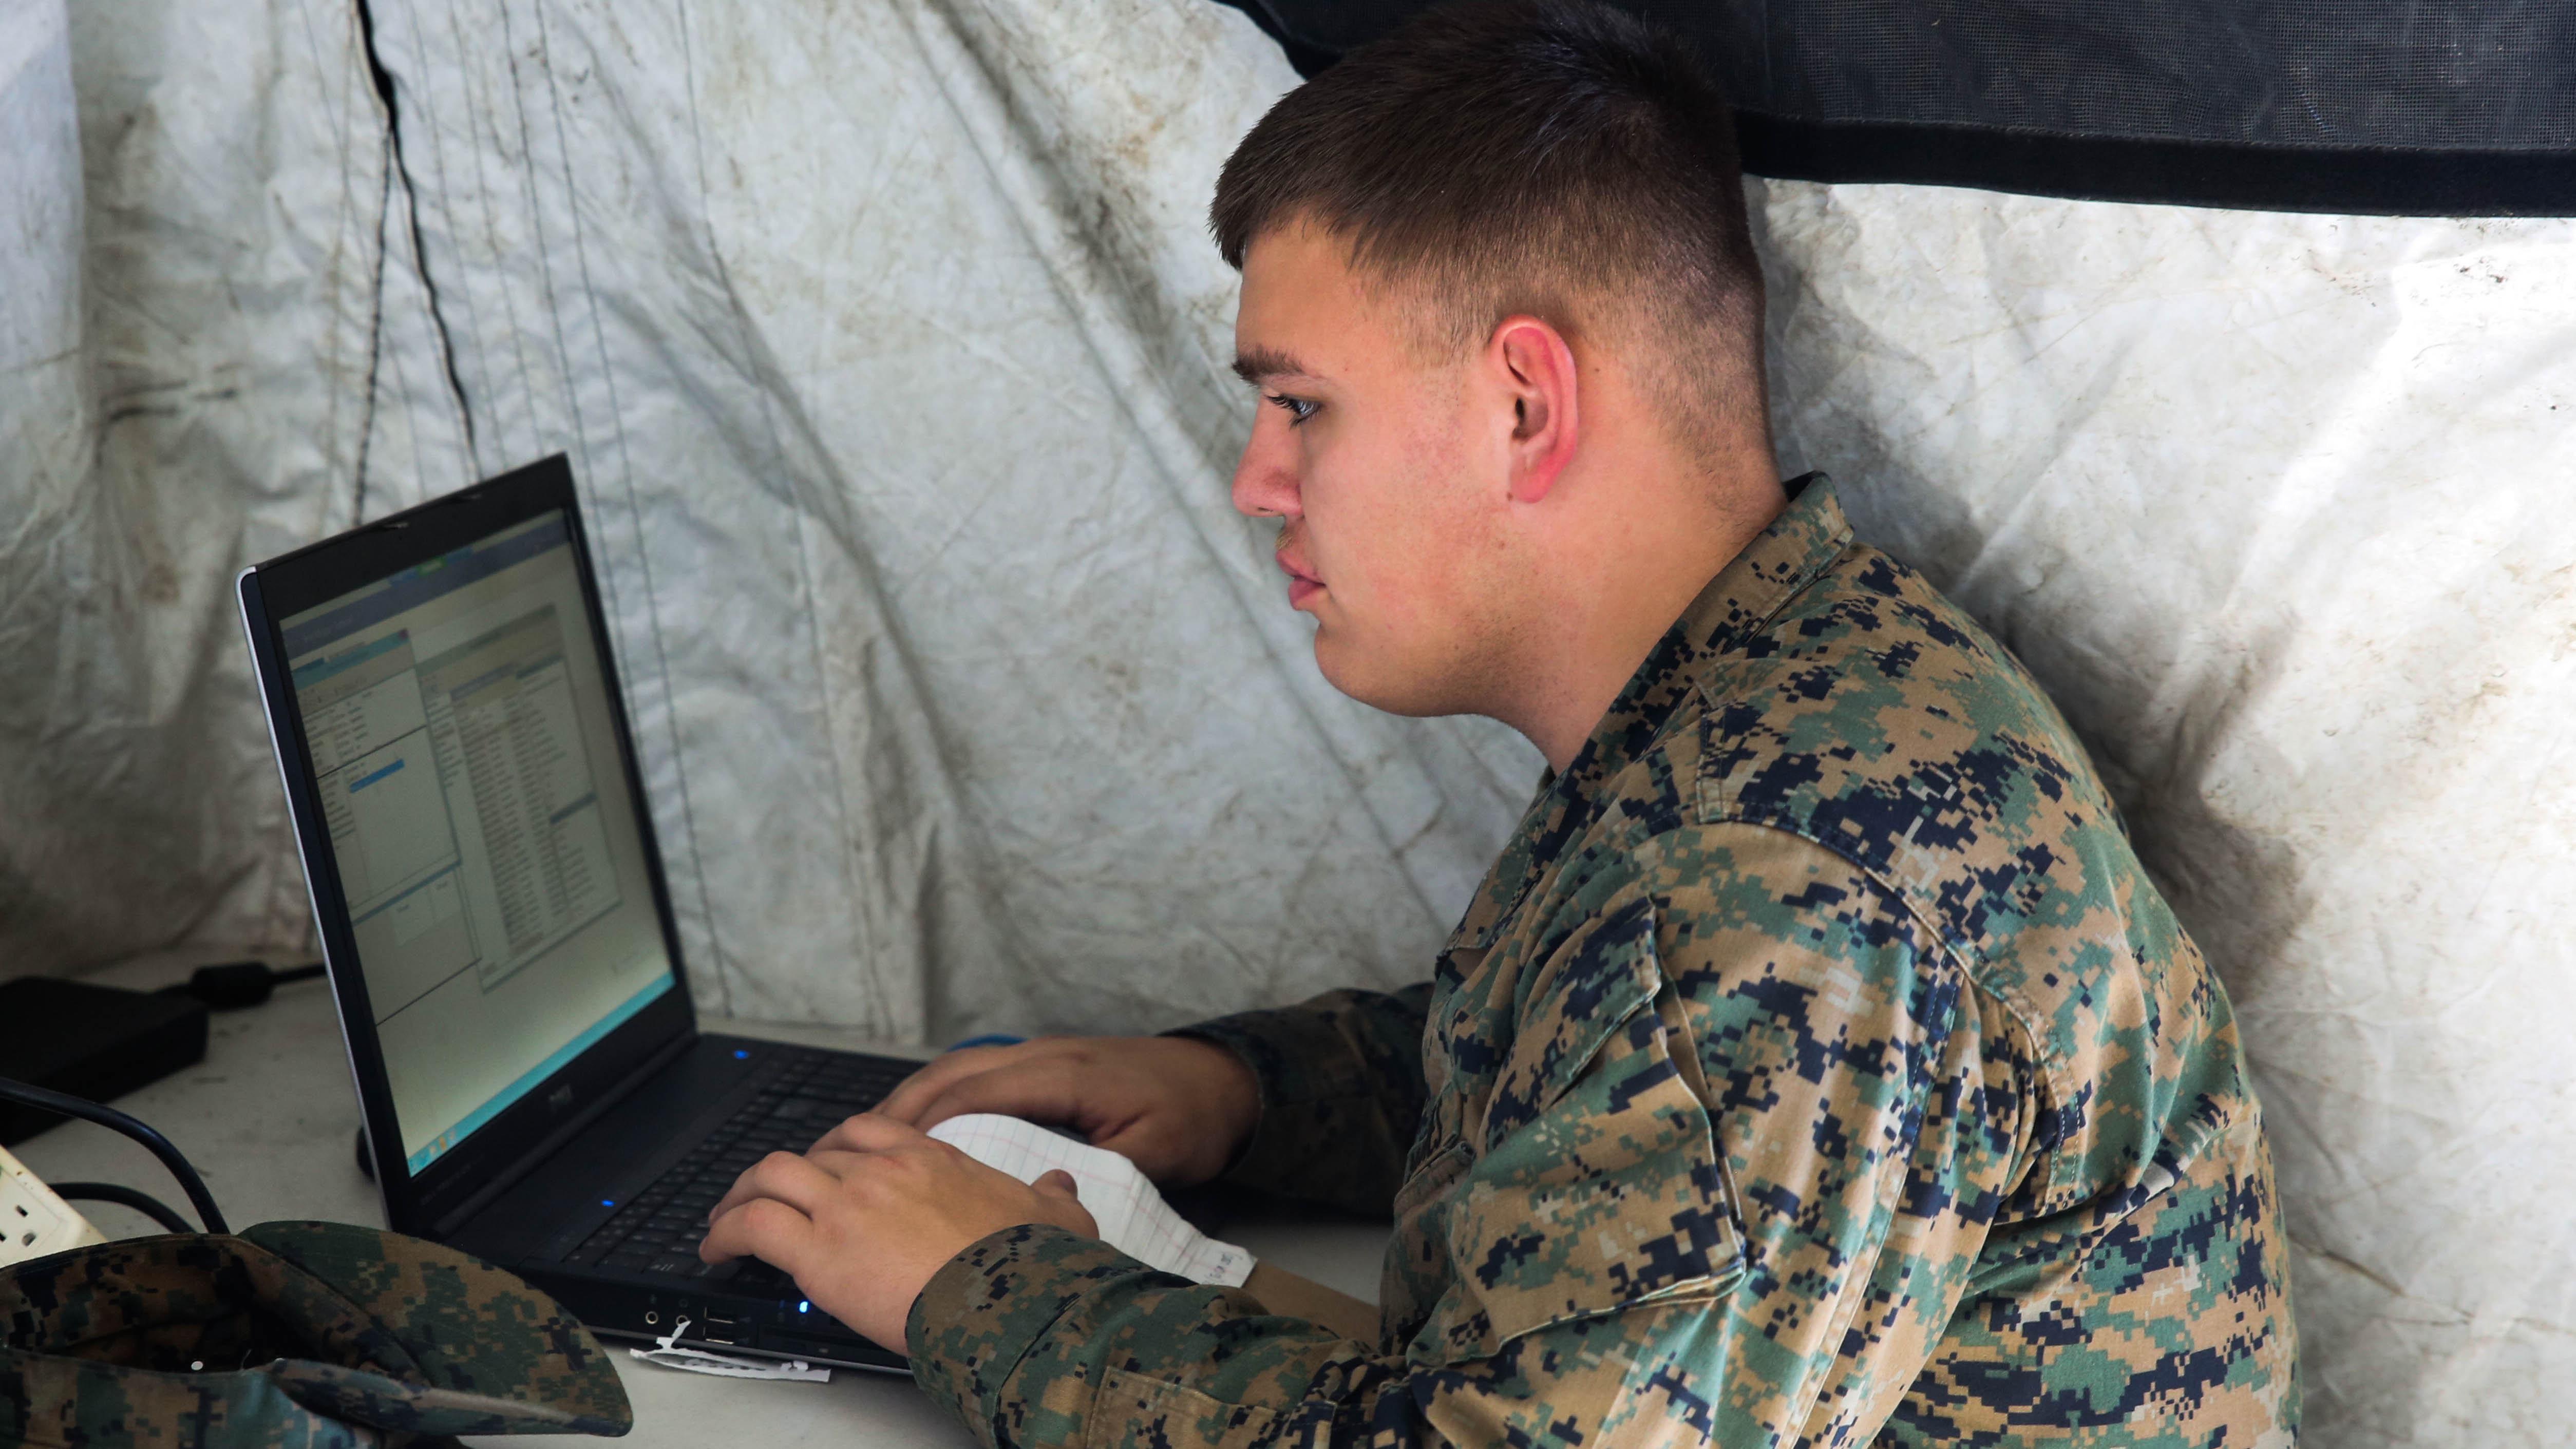 Pfc. Alec Rivera, a cyber-network specialist with Headquarters Company, Combat Logistics Regiment 25, works on a computer during a command post exercise at Camp Lejeune, N.C., Feb. 2, 2016. US Marine Corps Photo